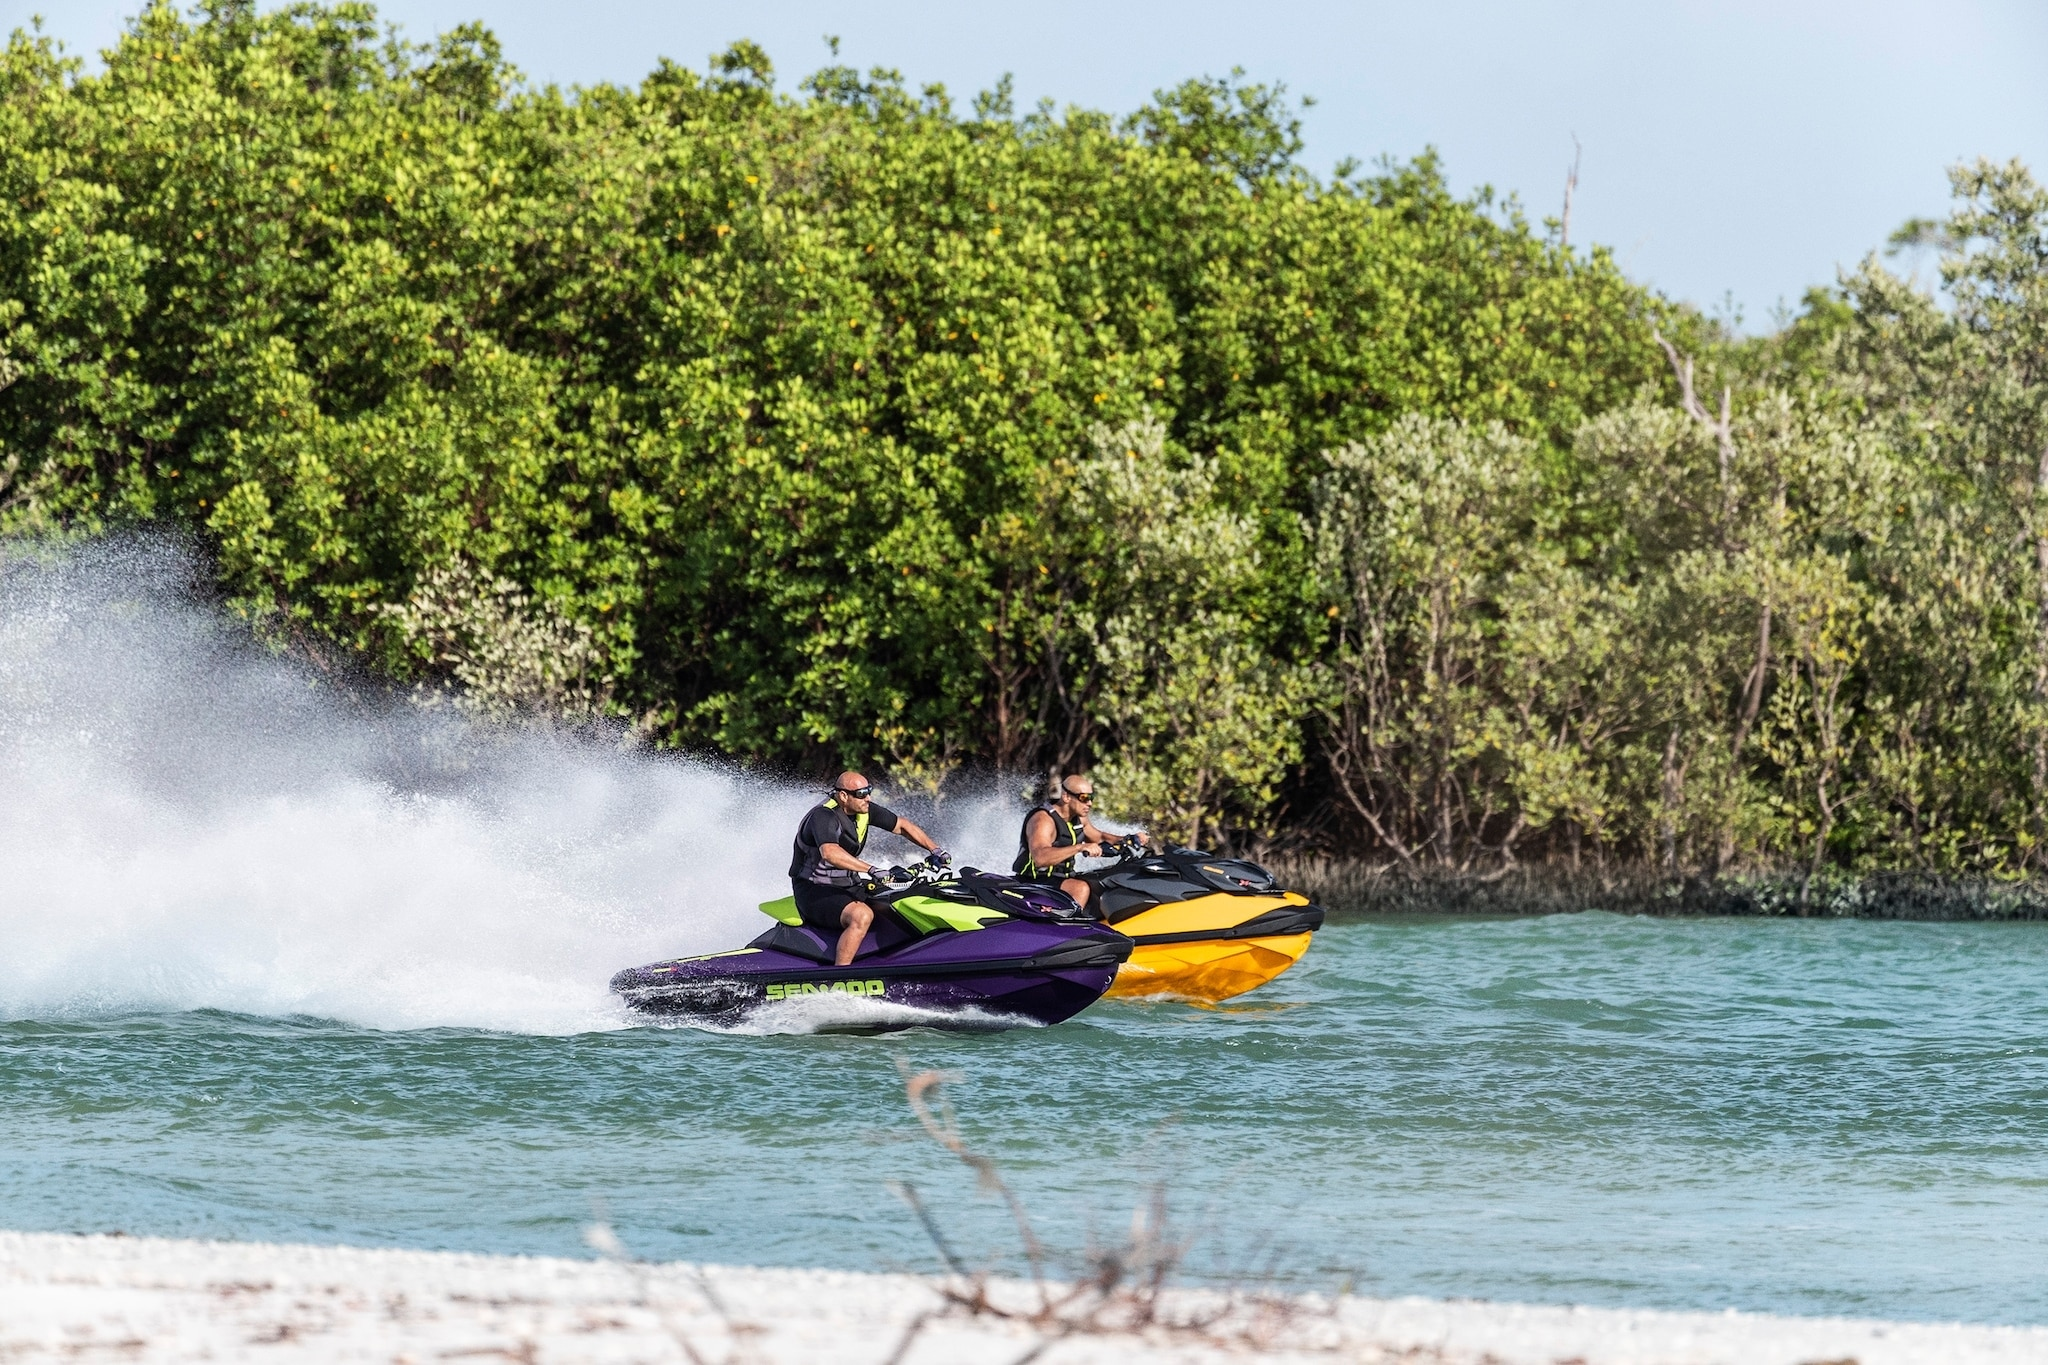 Man sipping a cup of tea on his Sea-doo personal watercraft